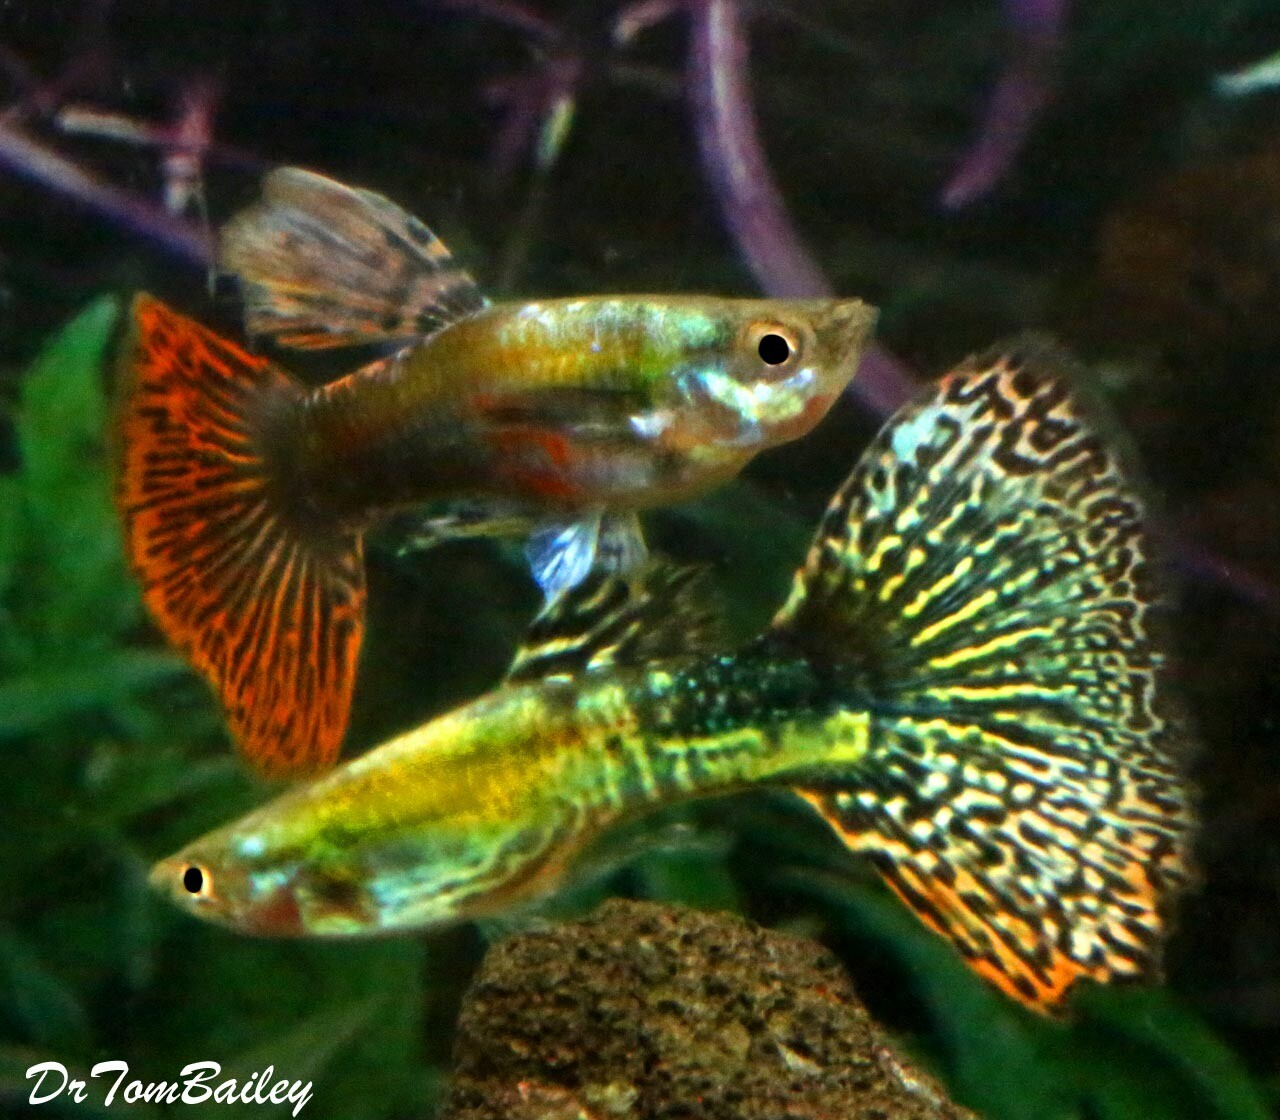 "Premium New and Rare, UniquePlus® Snakeskin Male Guppies, 1"" to 1.5"" long"